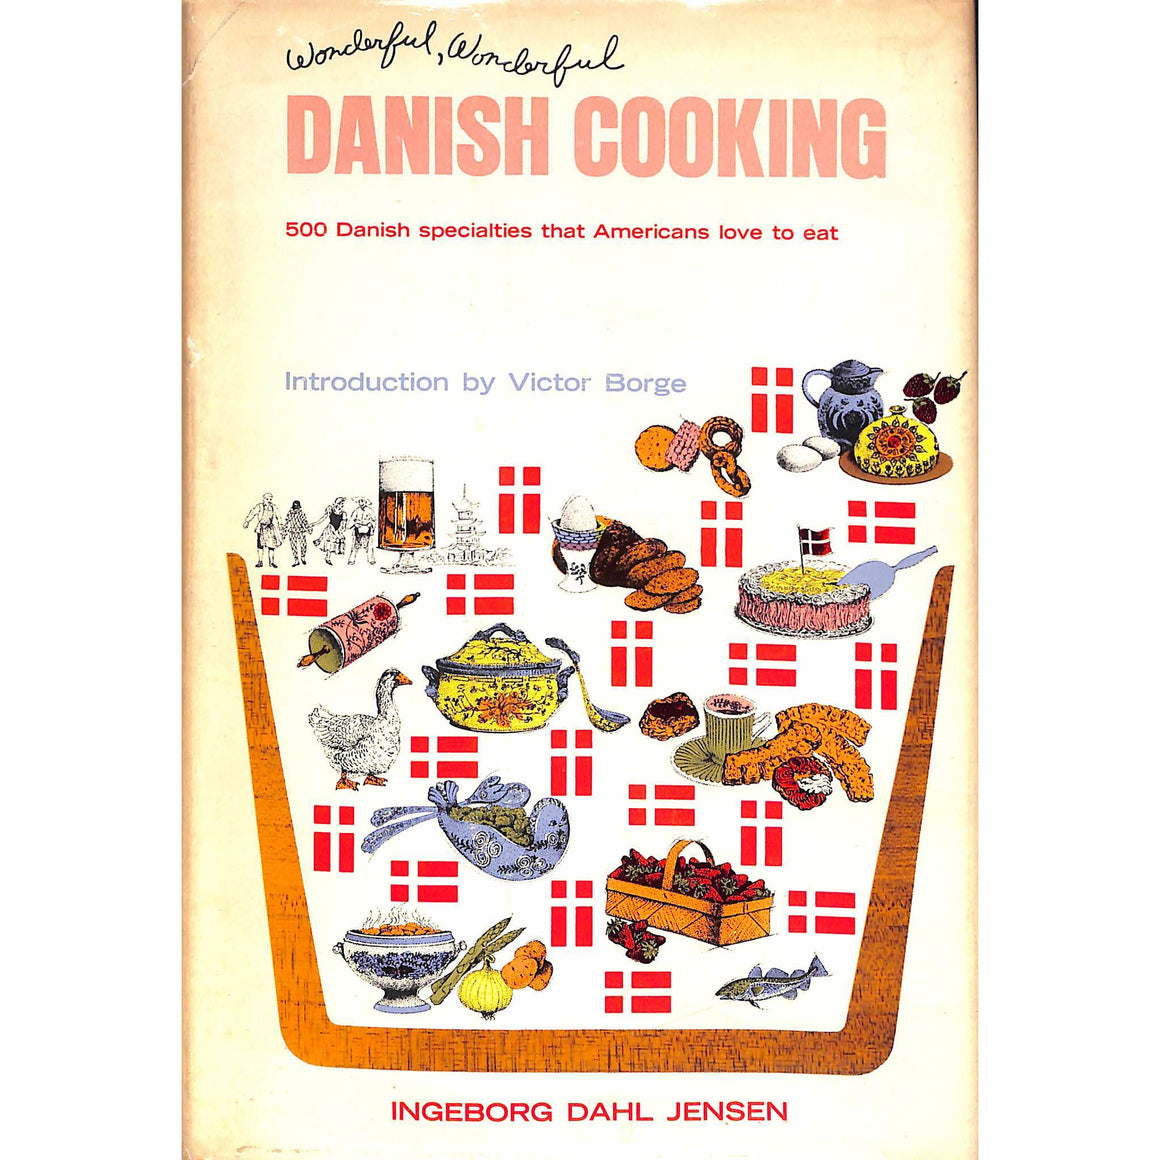 Danish Cooking